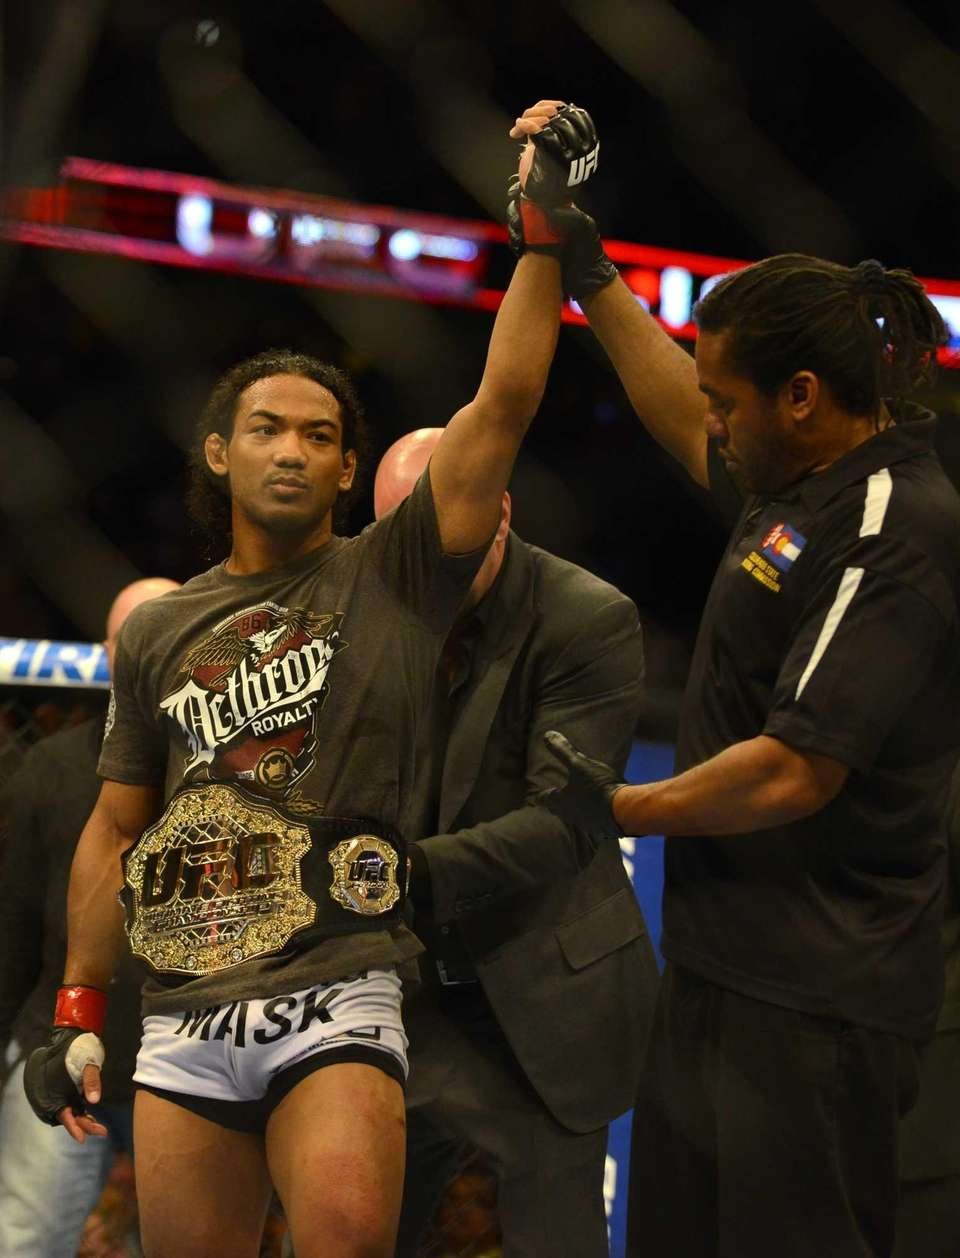 Benson Henderson celebrates his win over Frankie Edgarin